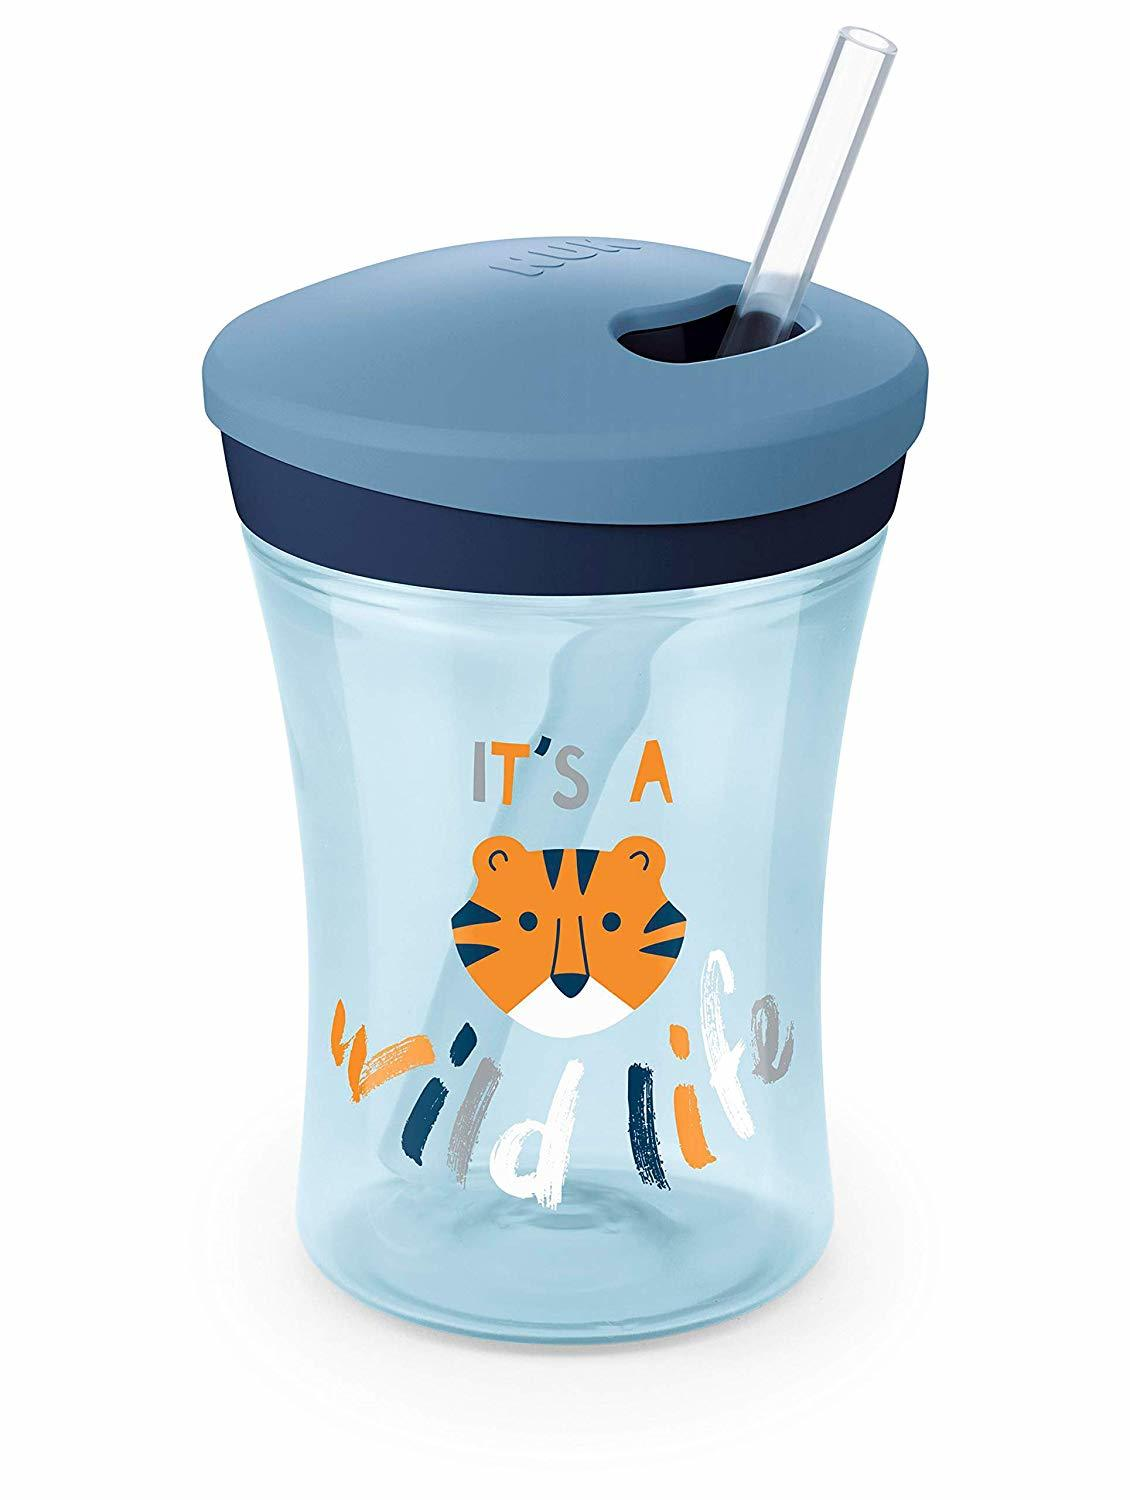 NUK: Evolution Action Cup 230ml - Blue image